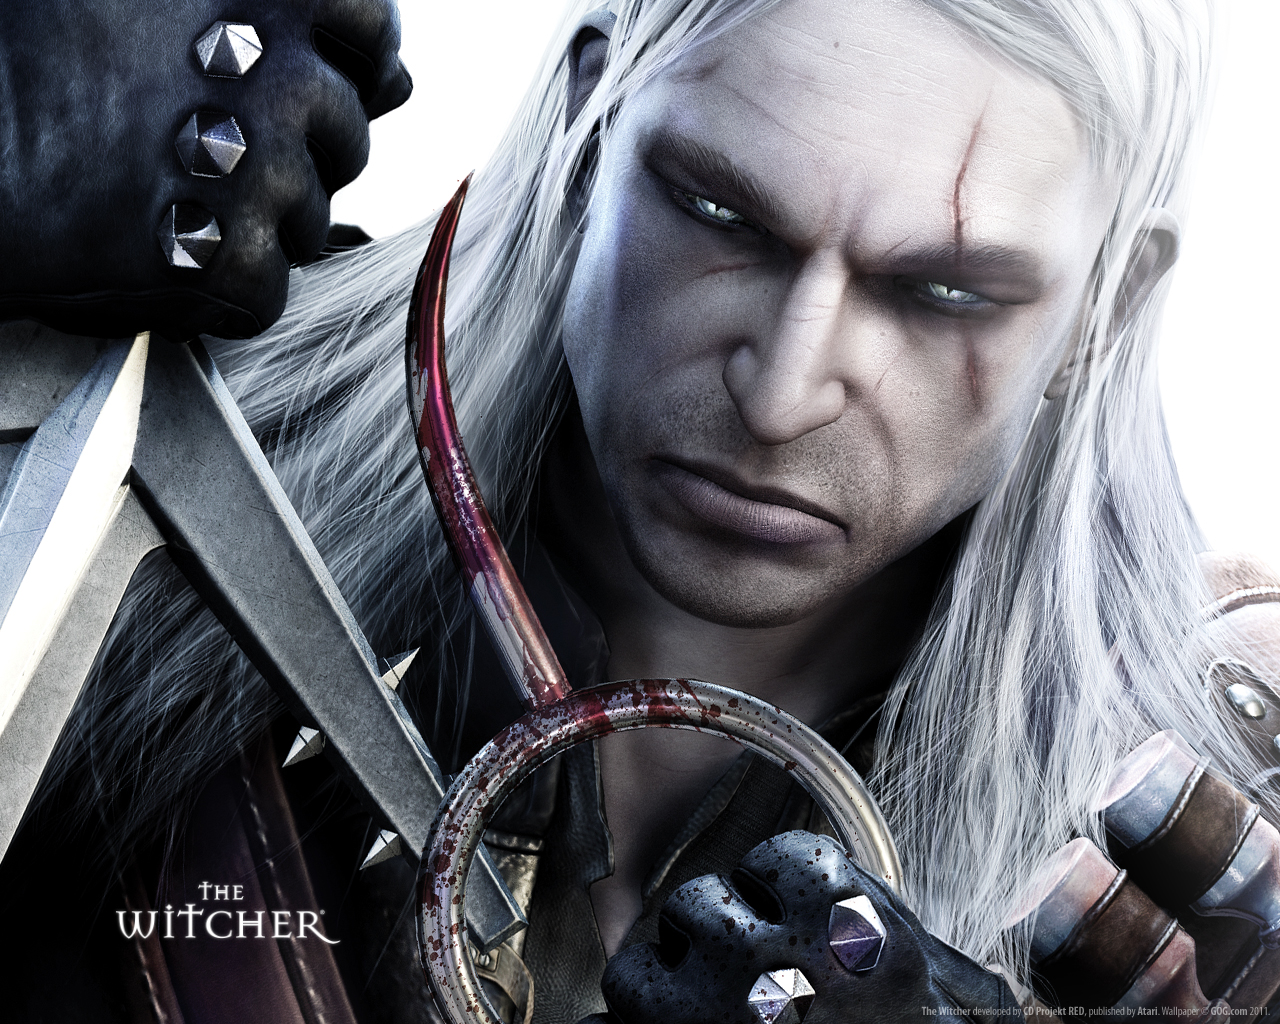 lusciousnet_the_witcher_geralt_2_800274149.jpg - Witcher, the